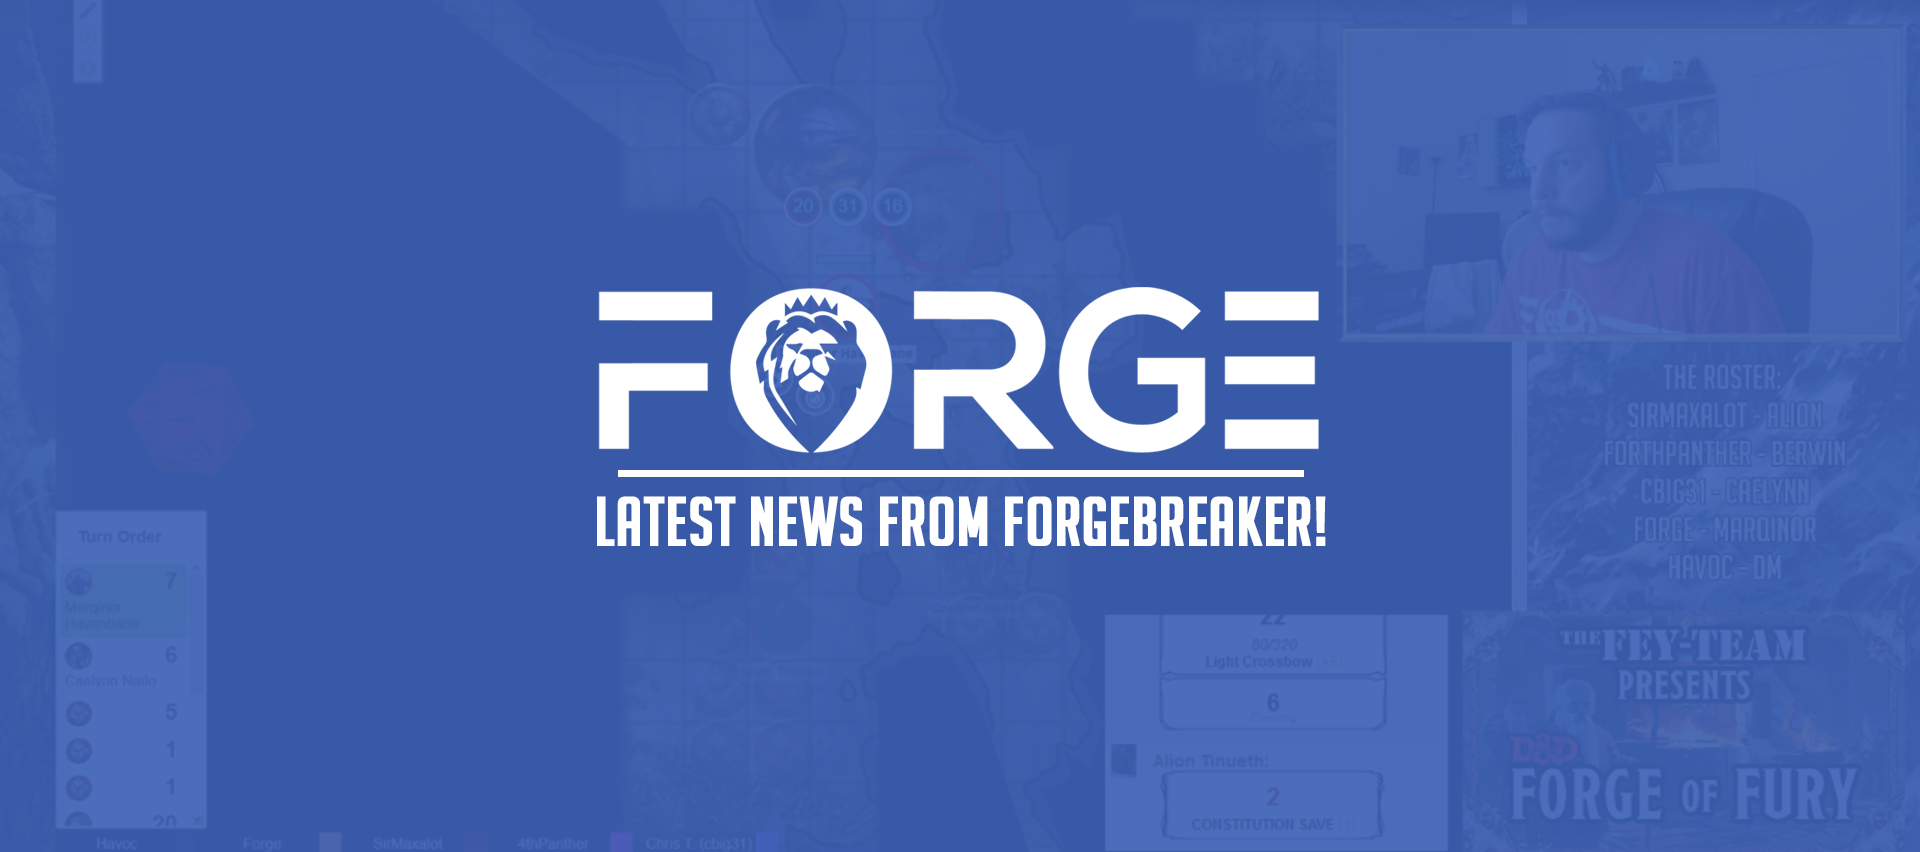 Latest News on Forgebreaker!